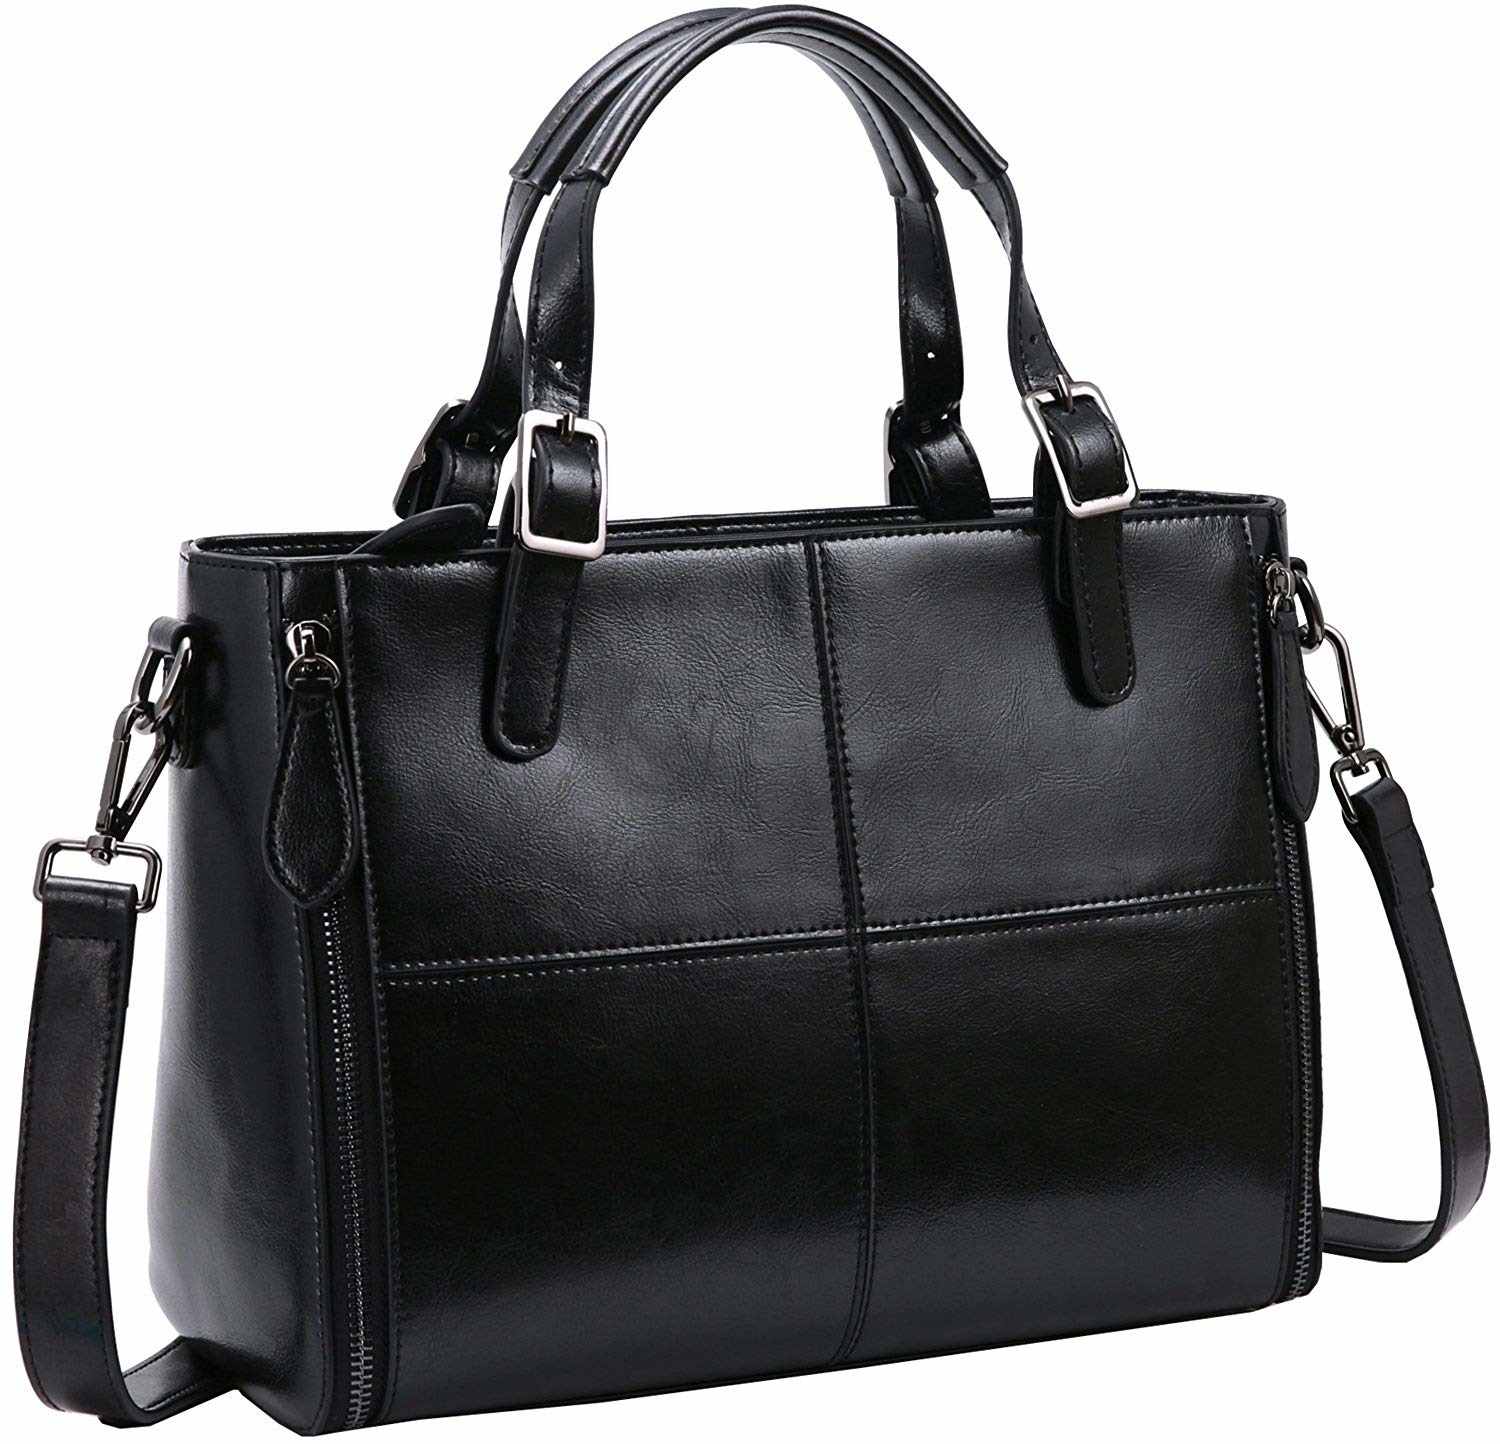 d41bb35add2 fit to viewer. prev next. HESHE On Clearance Big Sale Heshe Women's Fashion  New Top Tote Handle Shoulder Crossbody Bag Vintage